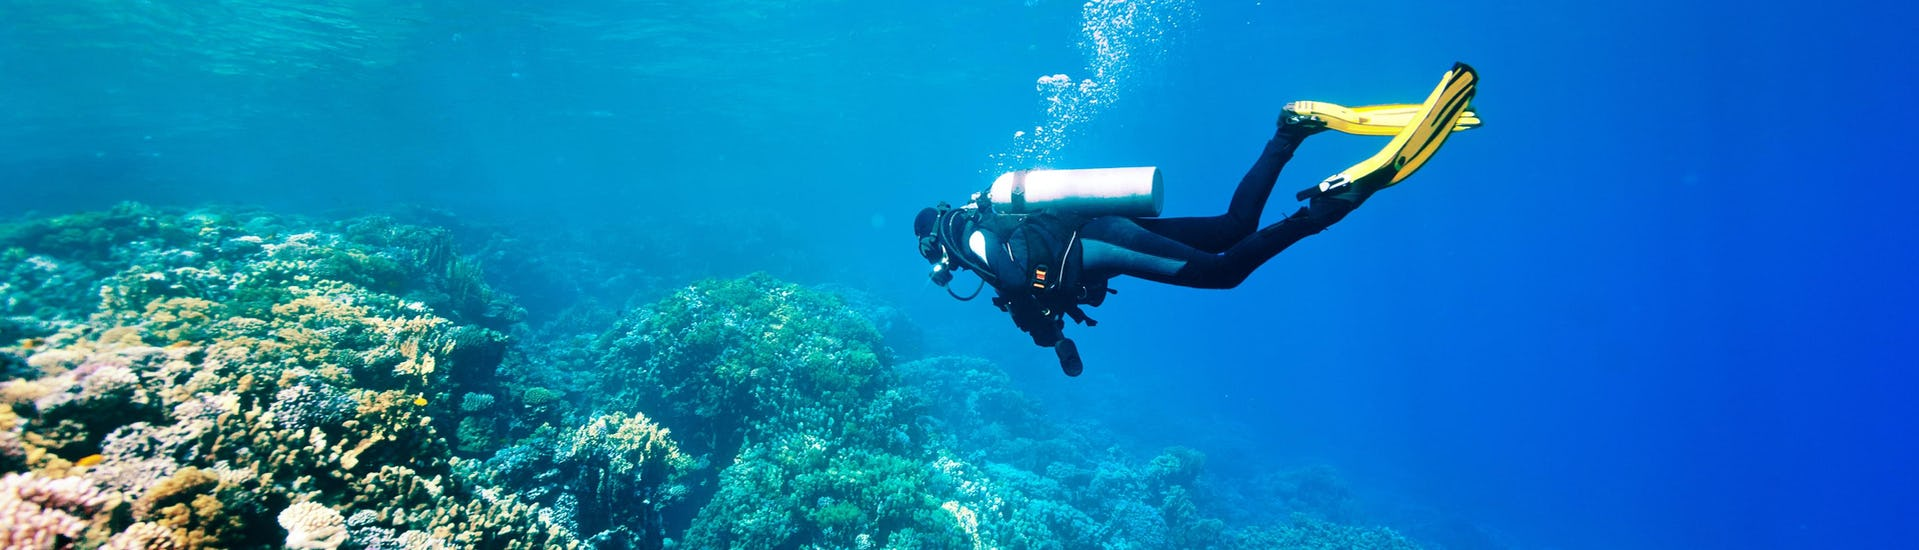 A scuba diver is exploring a reef while scuba diving in the scuba diving destination of Comino.